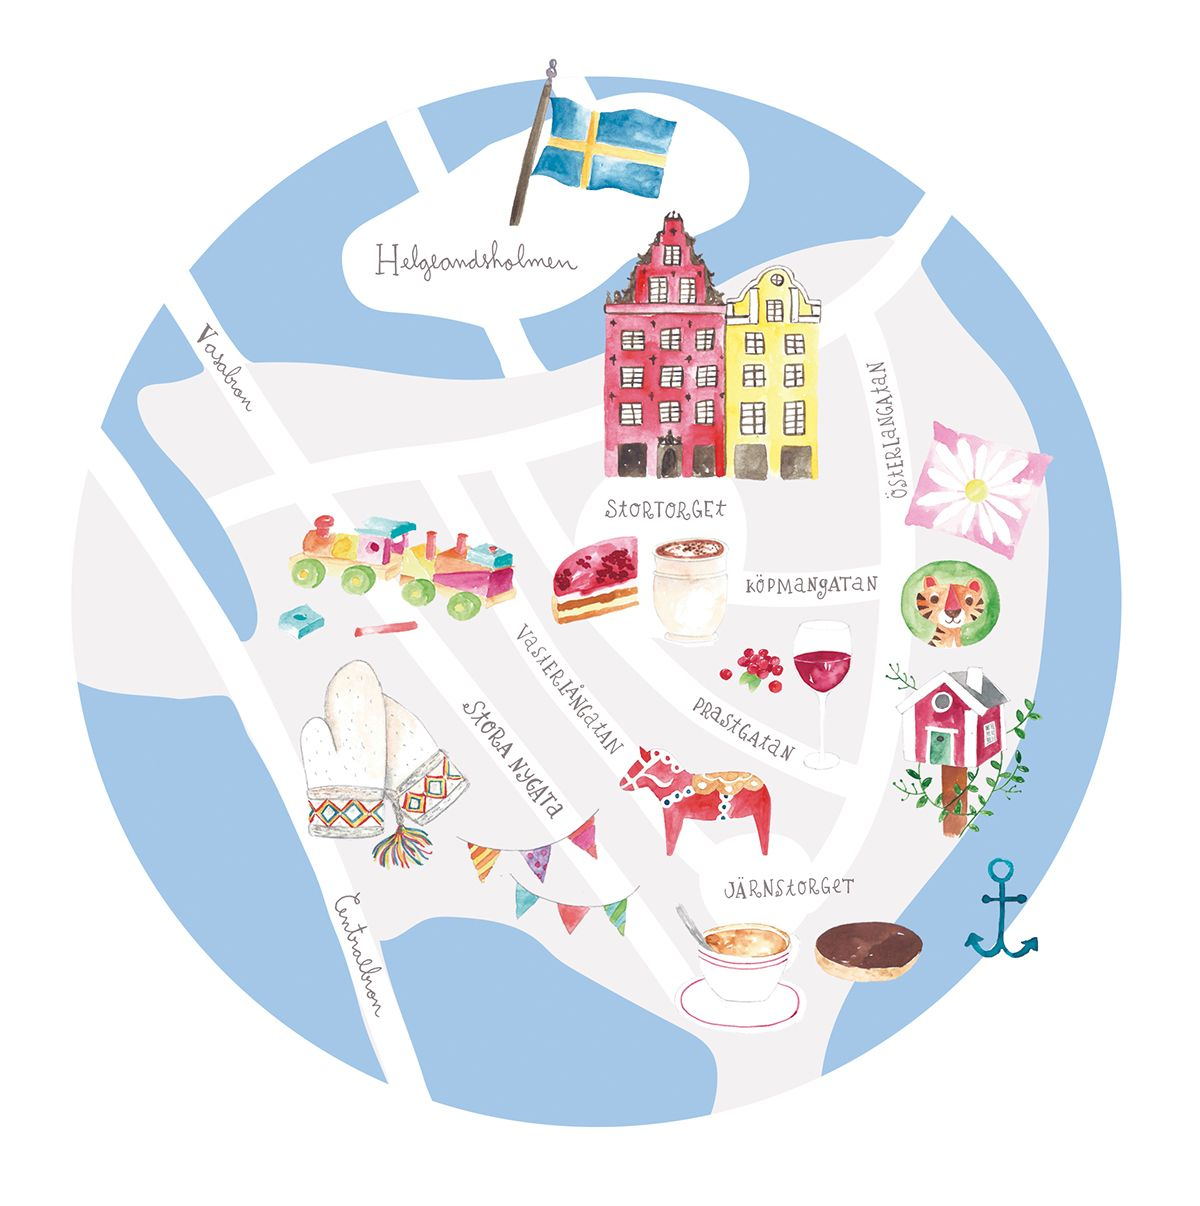 Stockholm Gamla Stan watercolor and digital illustrated map for Mr on